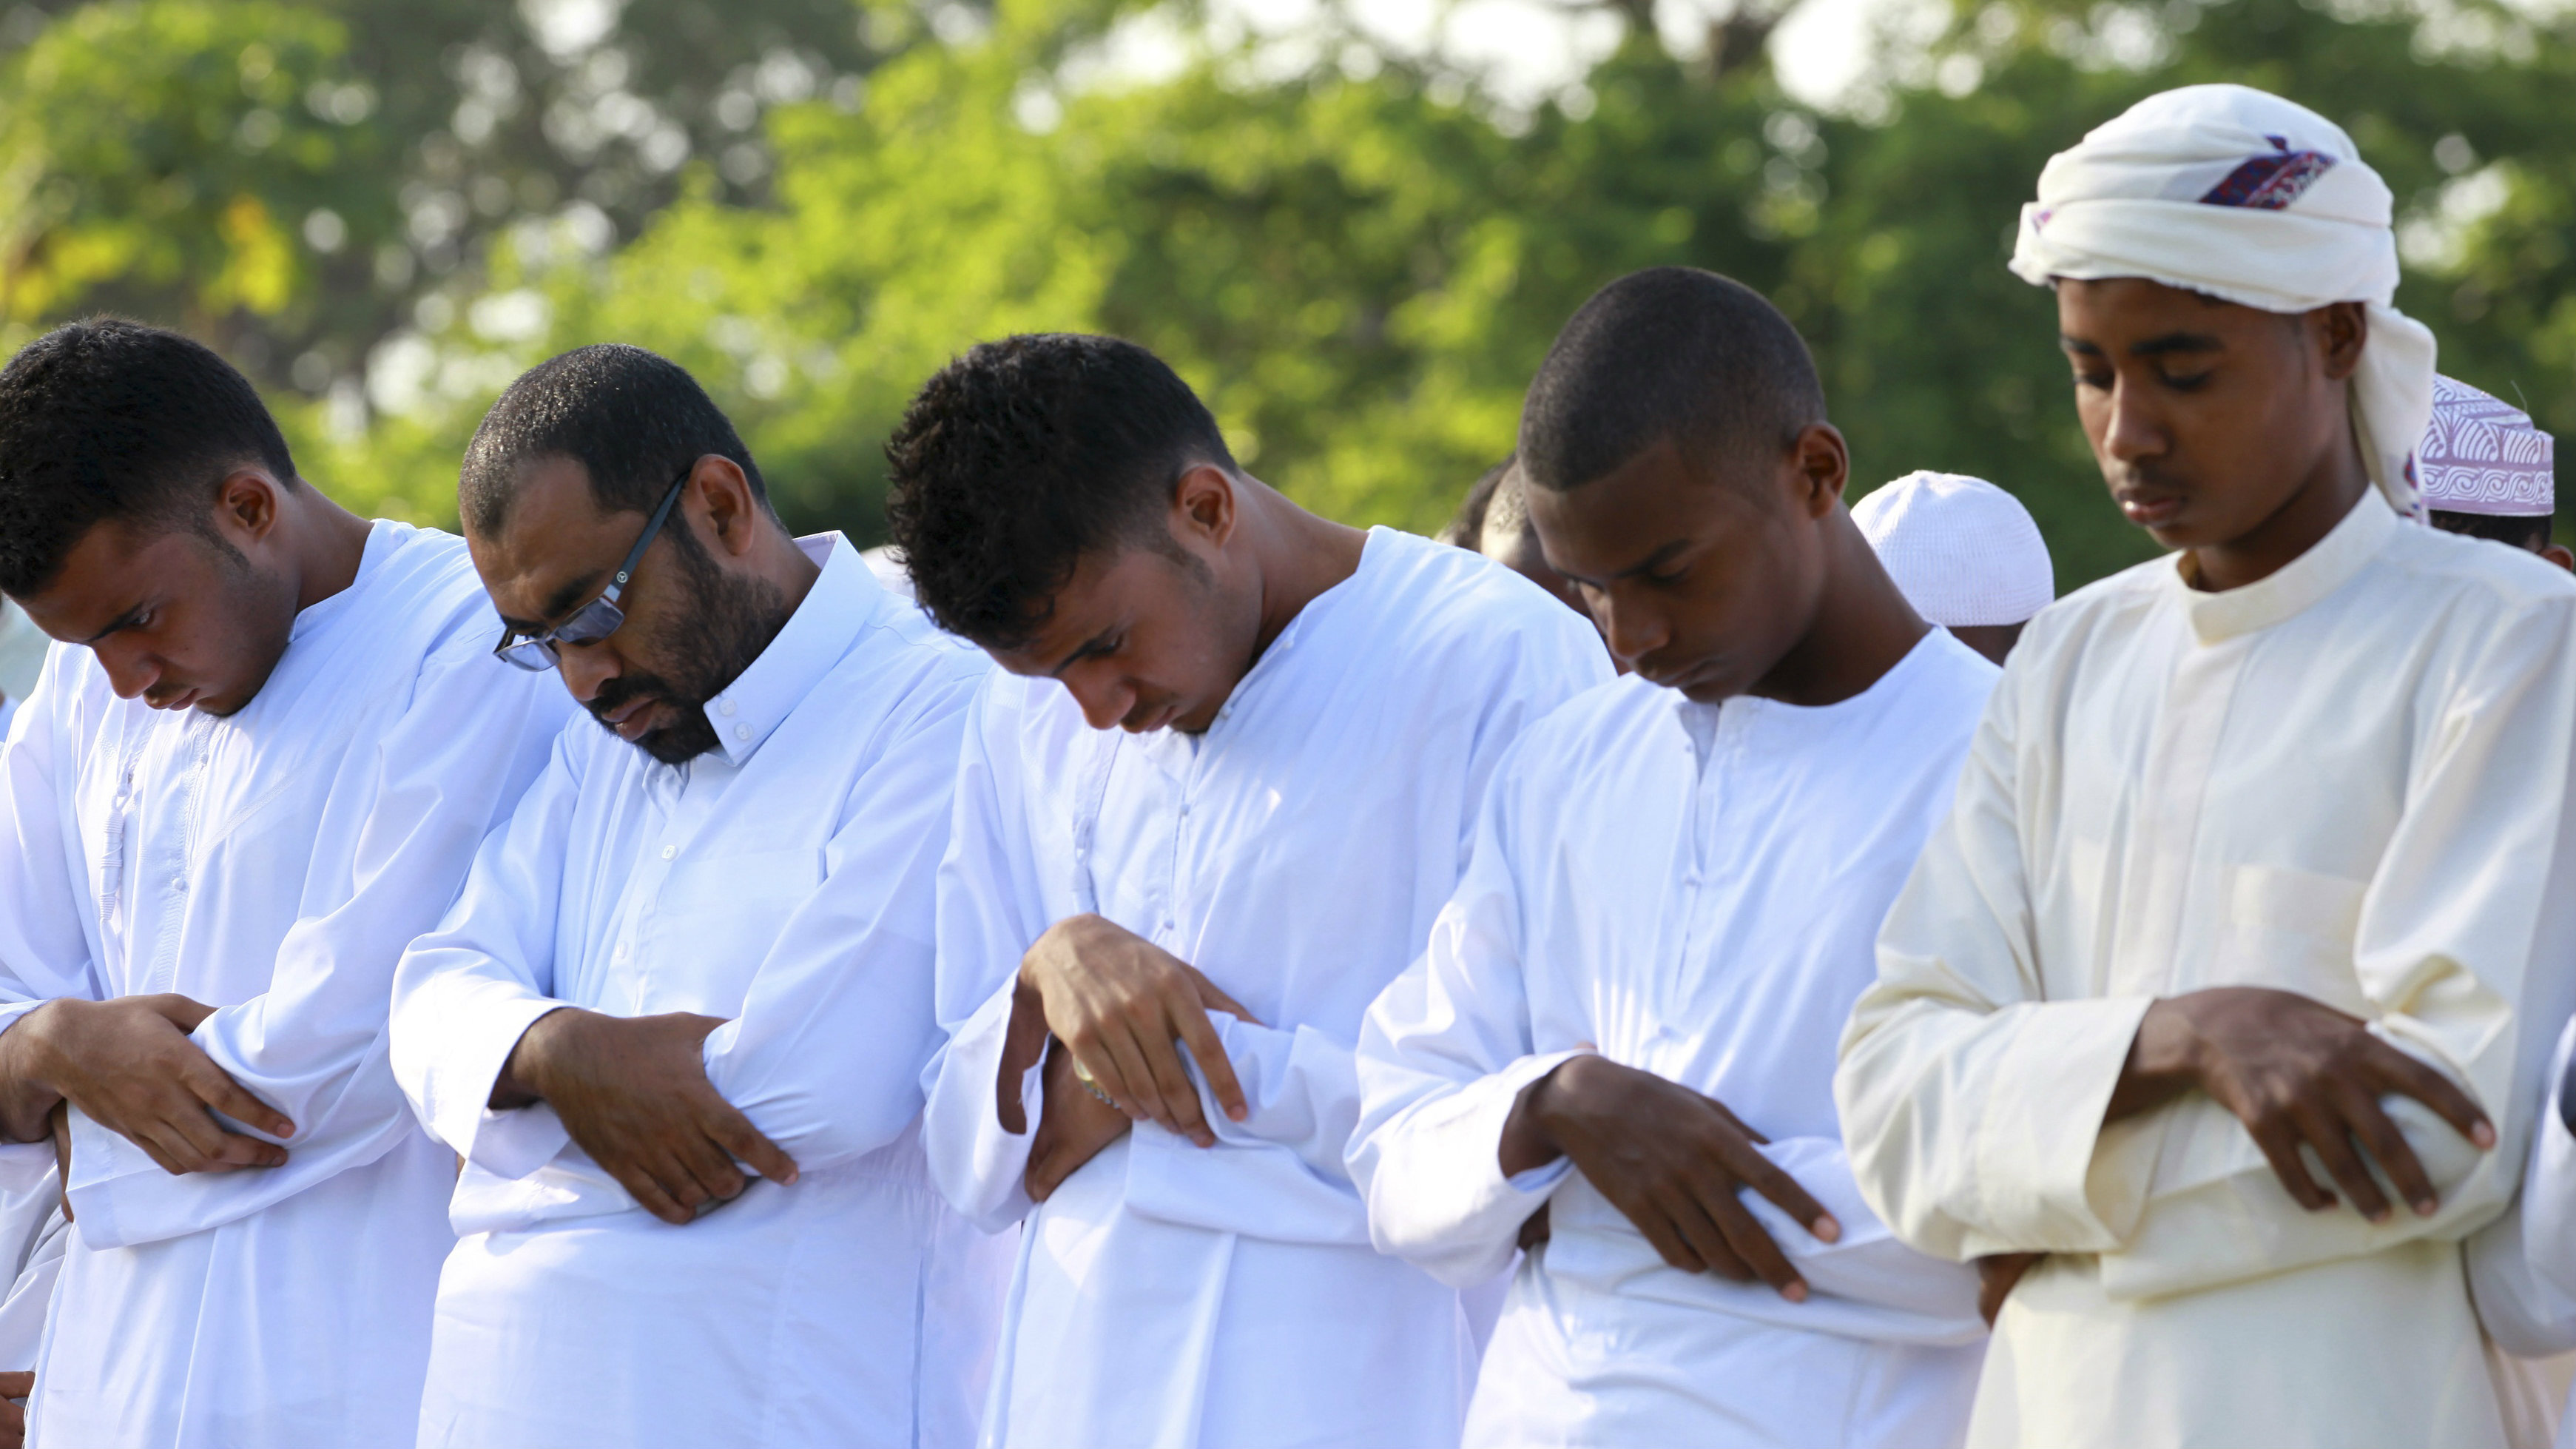 Muslims attend Eid al-Fitr prayers at Ziwani grounds in Kenya's coastal town of Mombasa August 9, 2013. Eid al-Fitr marks the end of the holy month of Ramadan.